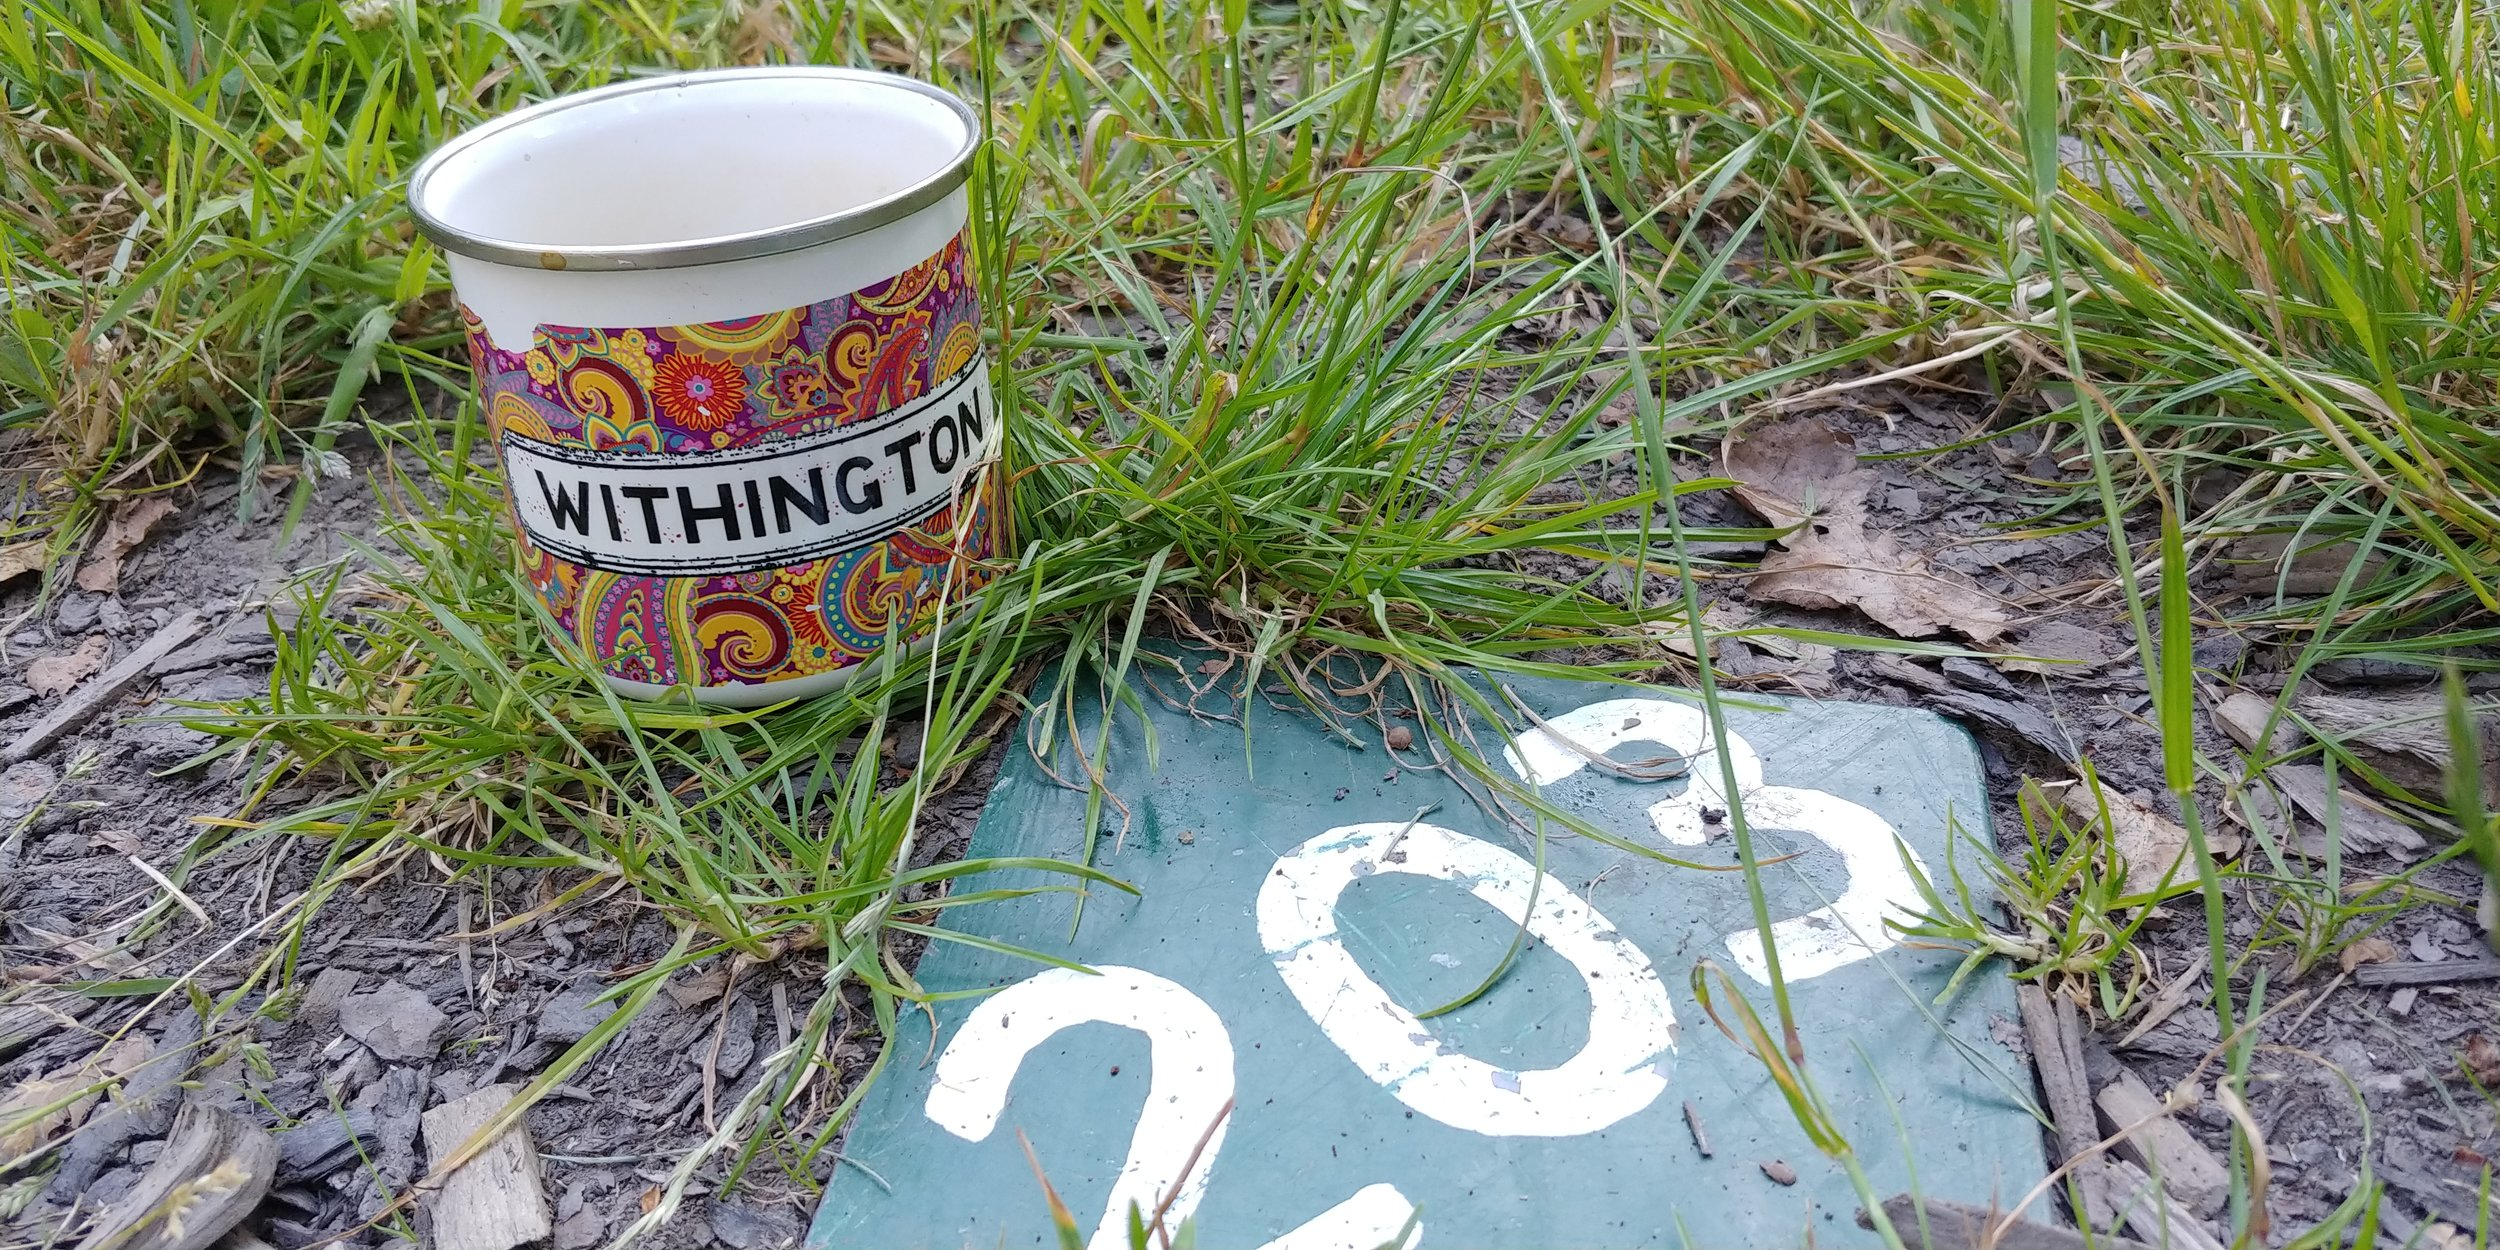 The pitch numbers are set into the grass, which put us to the test at first as we tried to work out which one was ours.